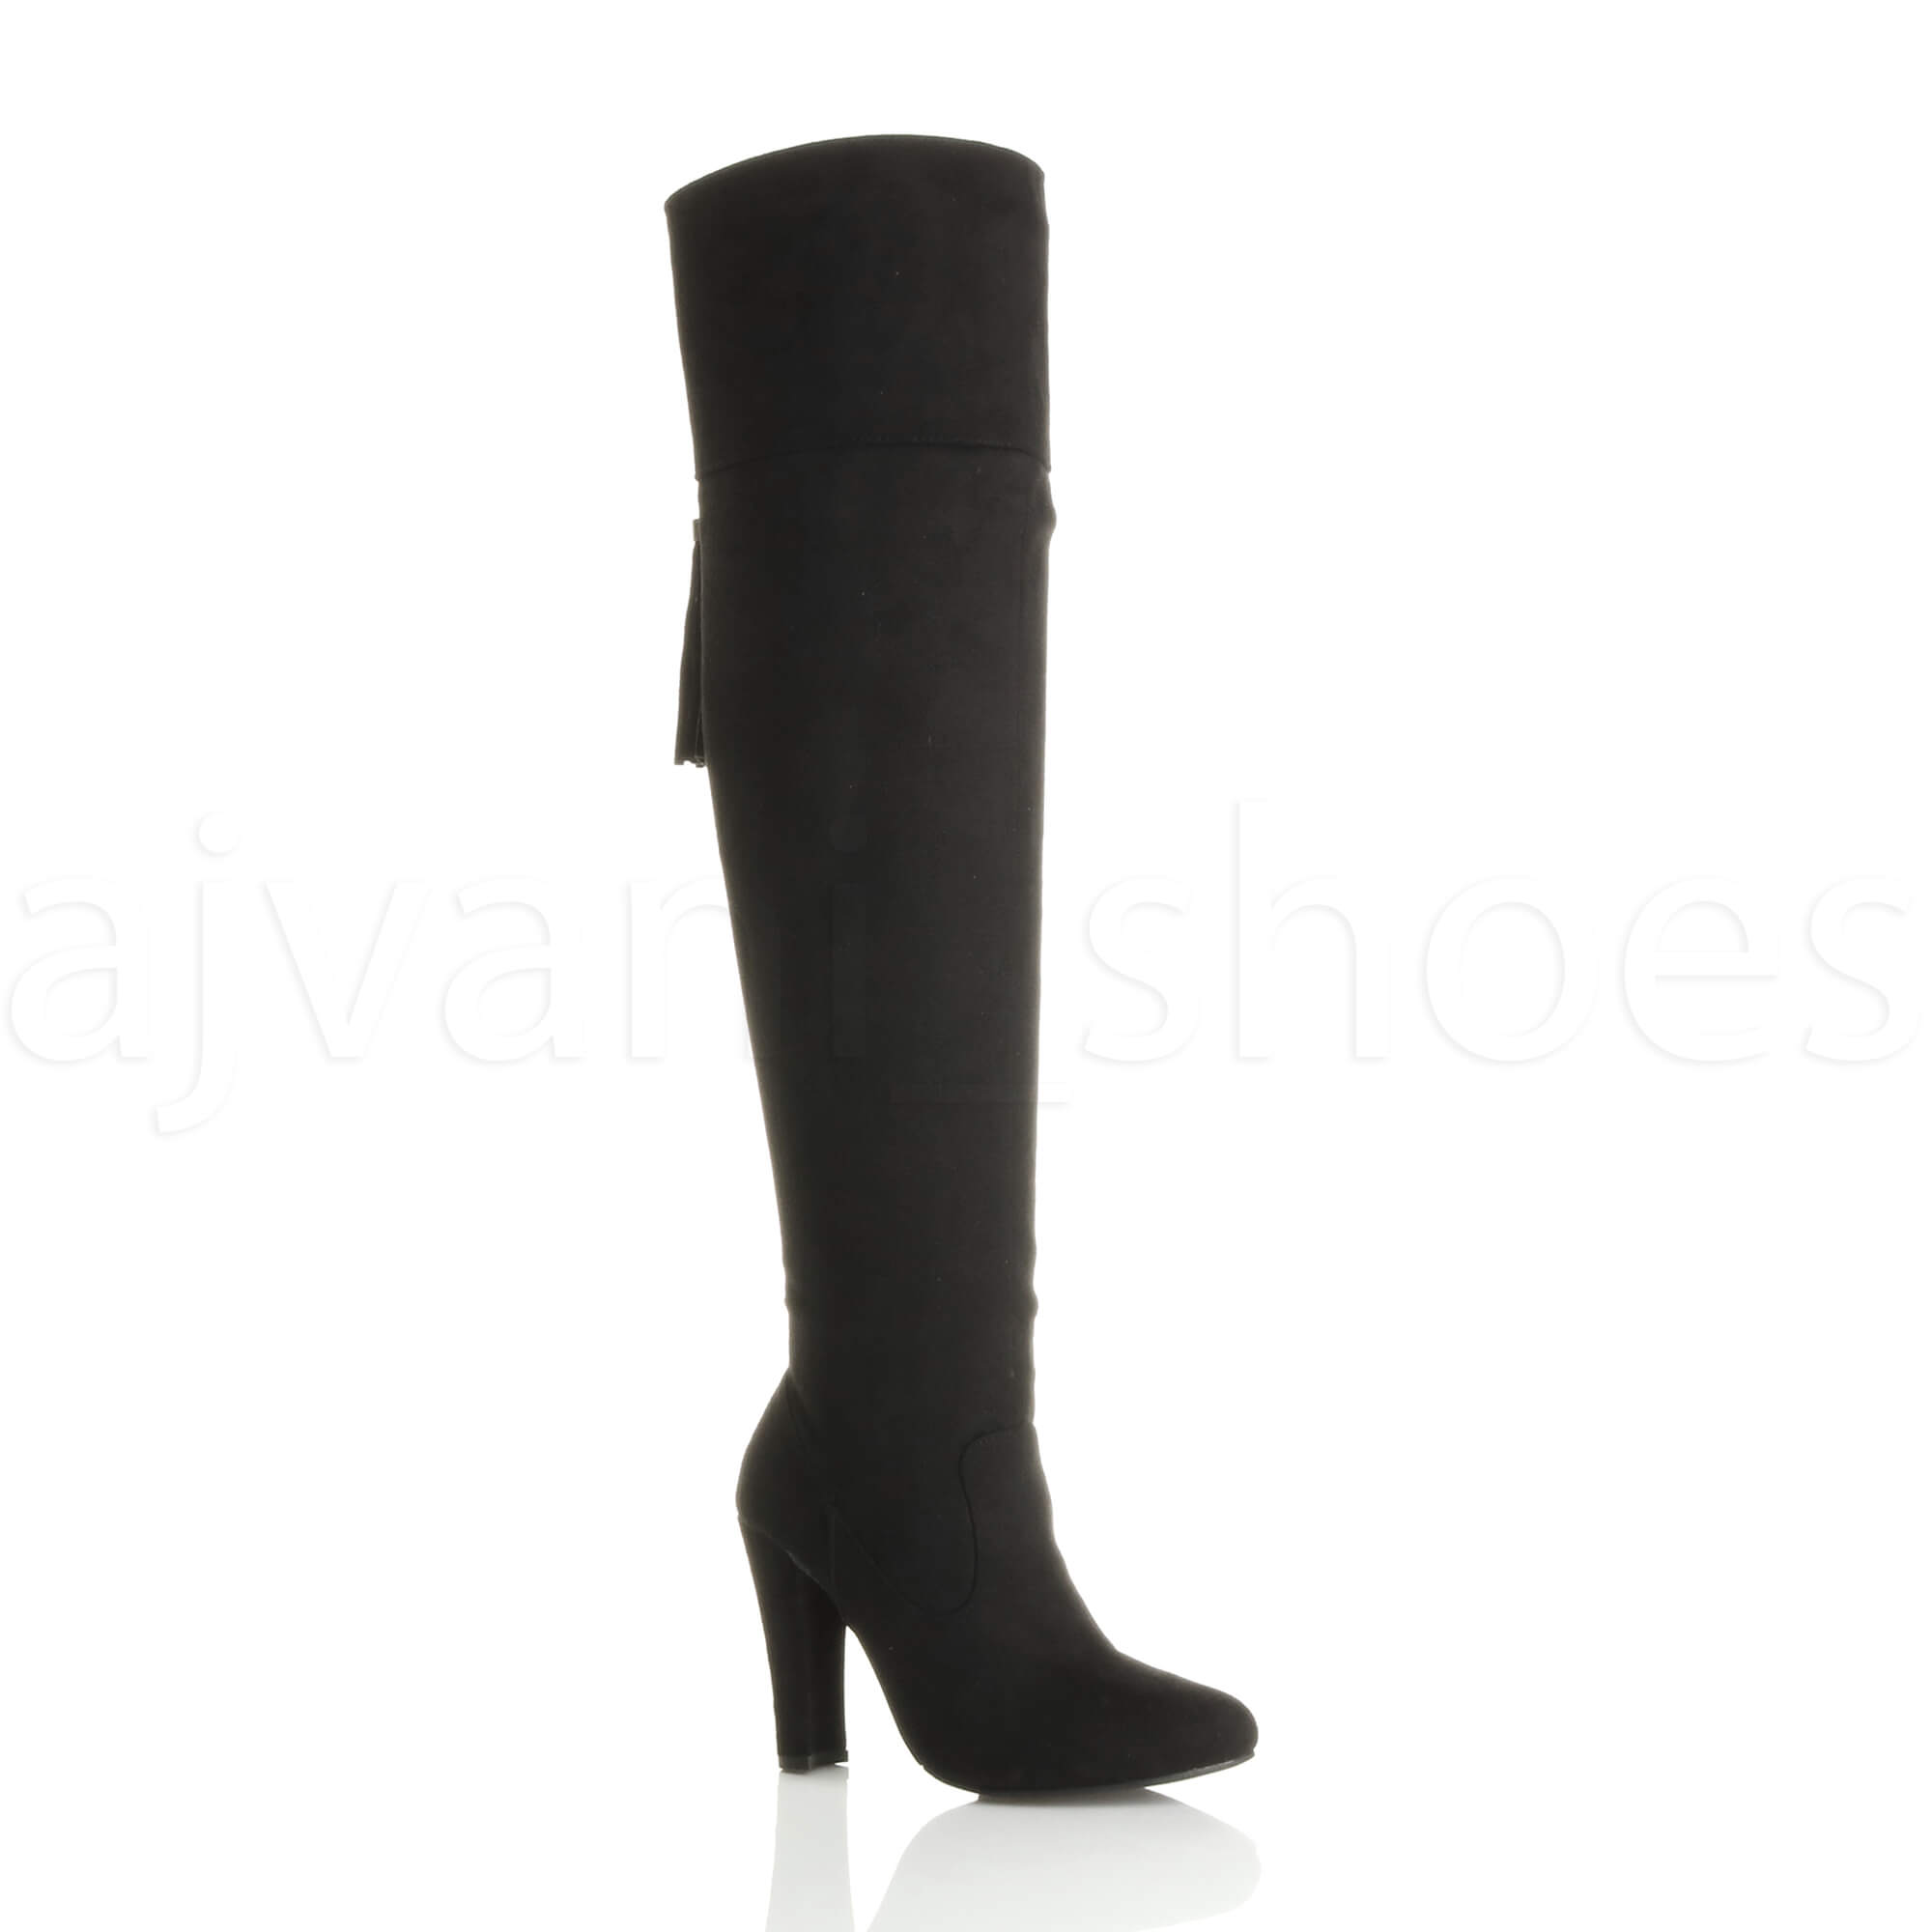 WOMENS-LADIES-BLOCK-HIGH-HEEL-TASSEL-SMART-OVER-THE-KNEE-THIGH-HIGH-BOOTS-SIZE